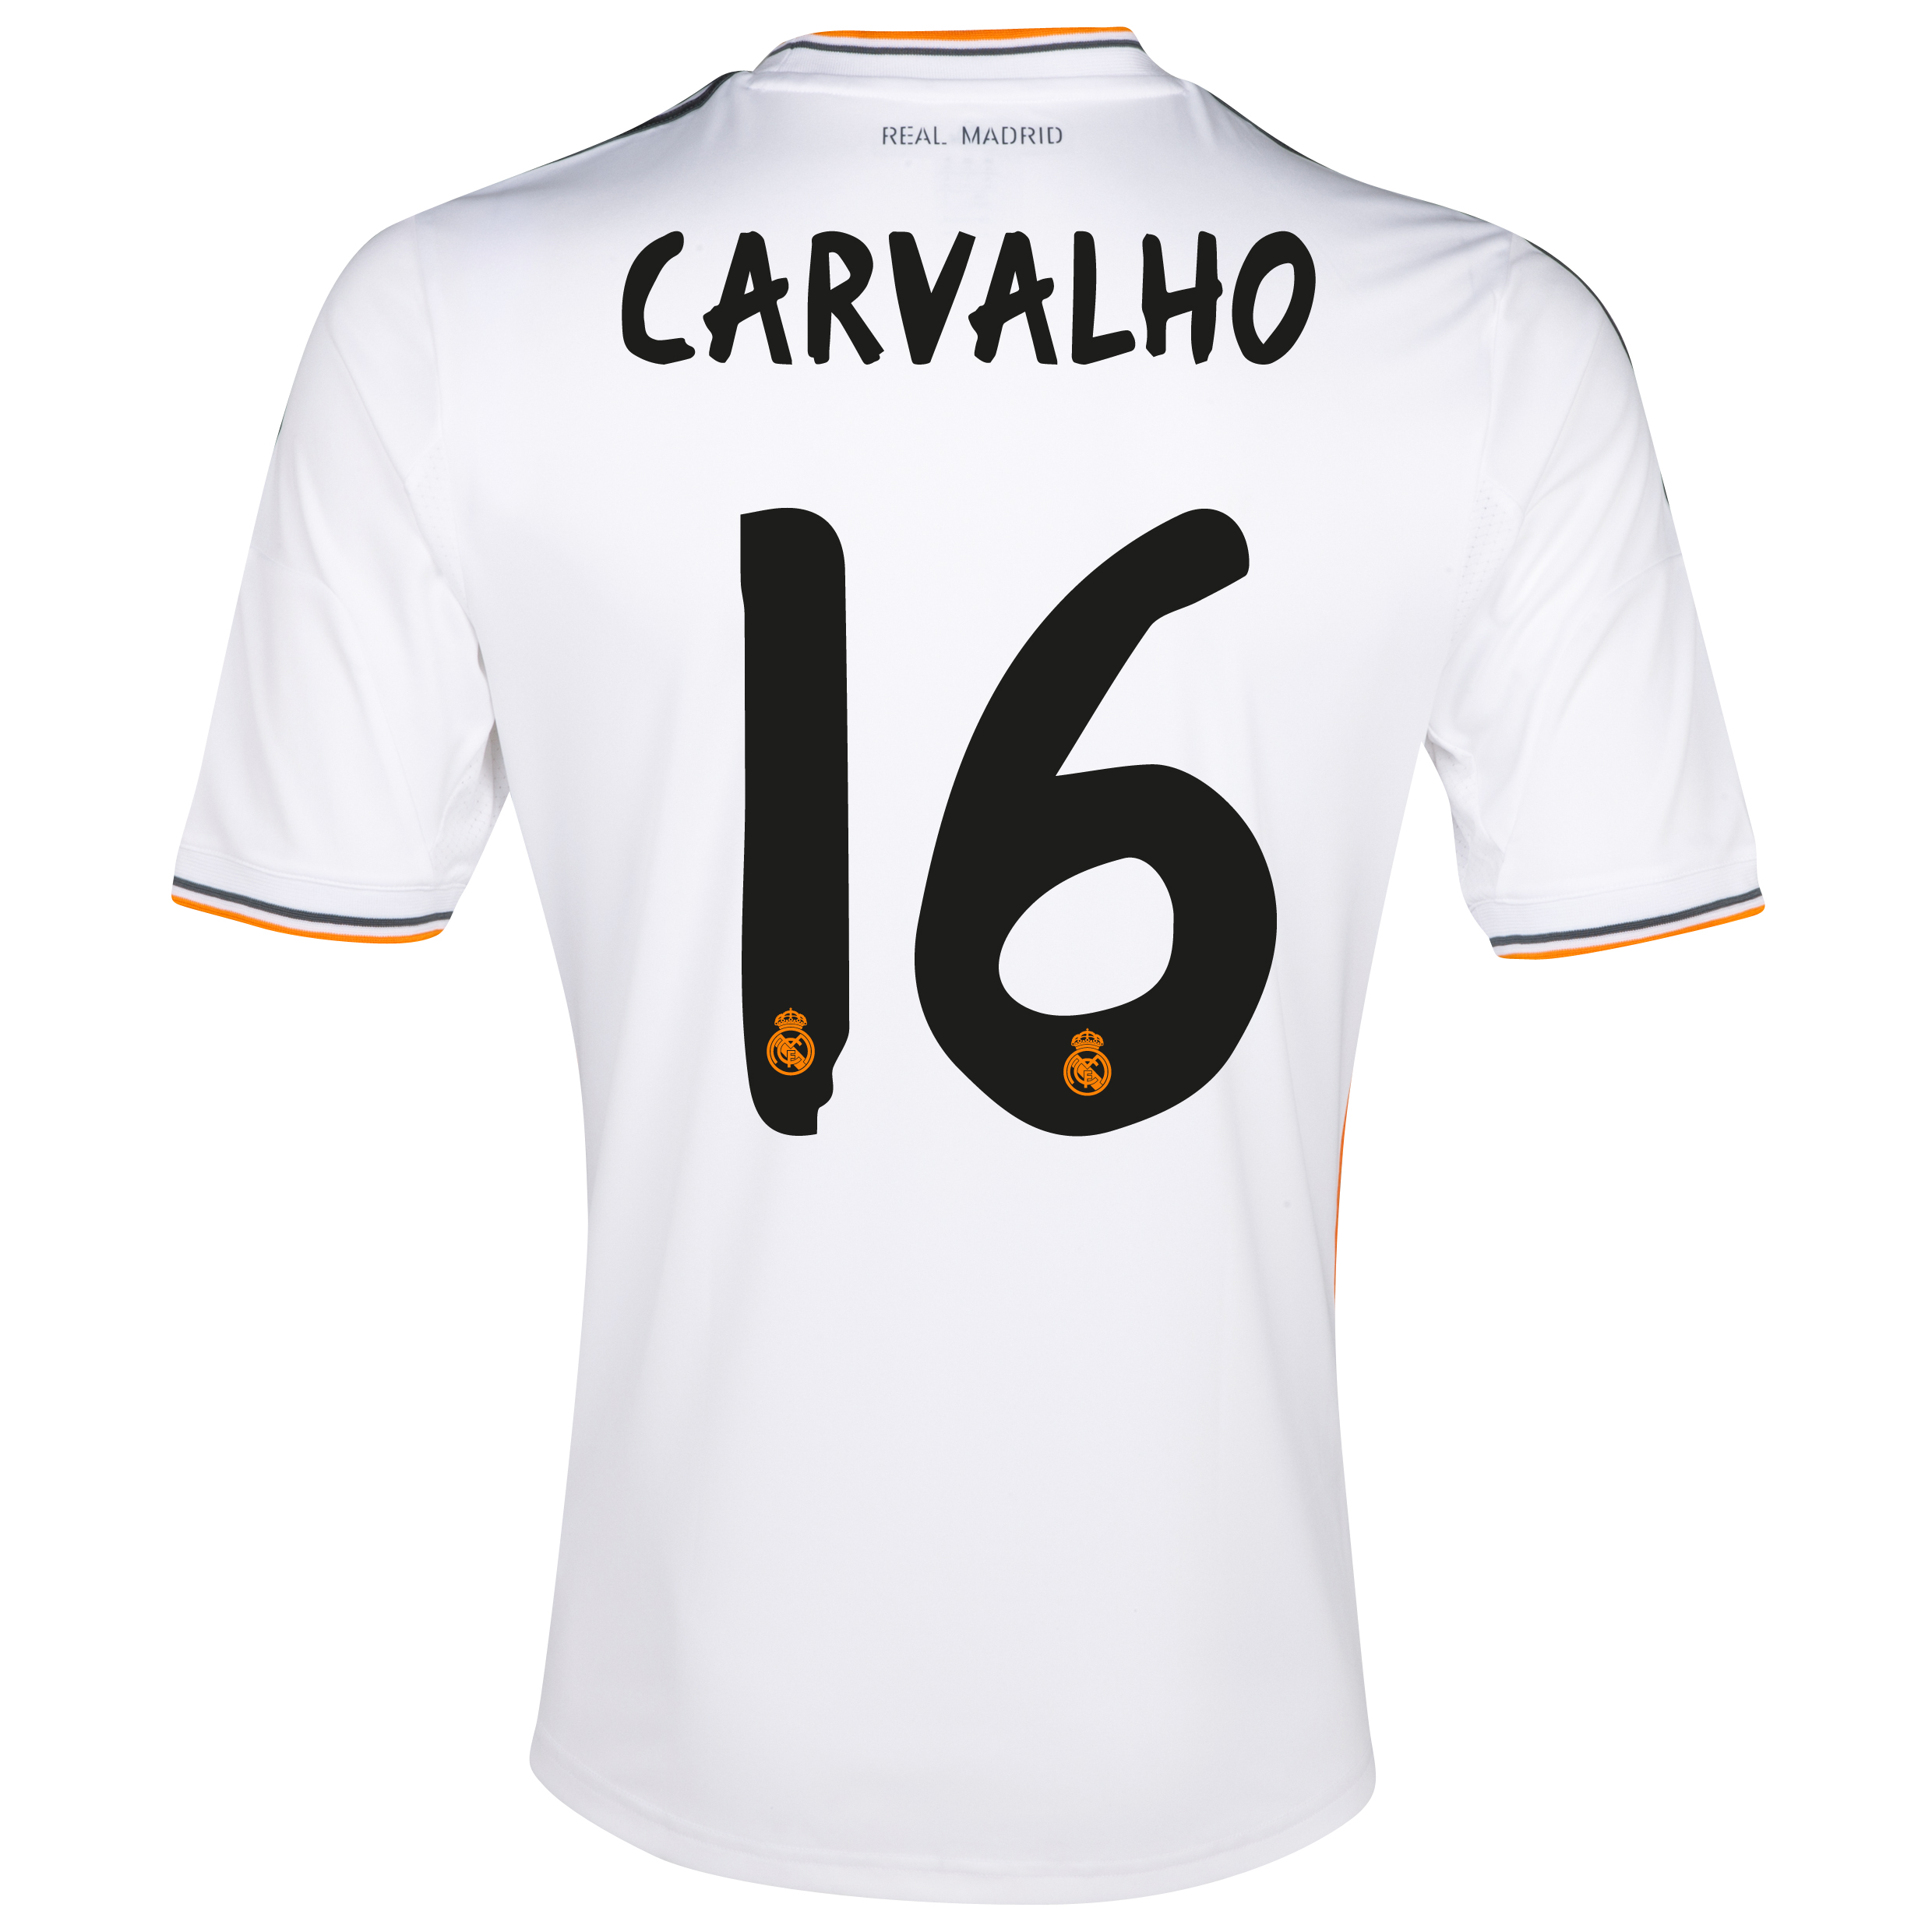 Real Madrid Home Shirt 2013/14 - Kids with Carvalho 16 printing